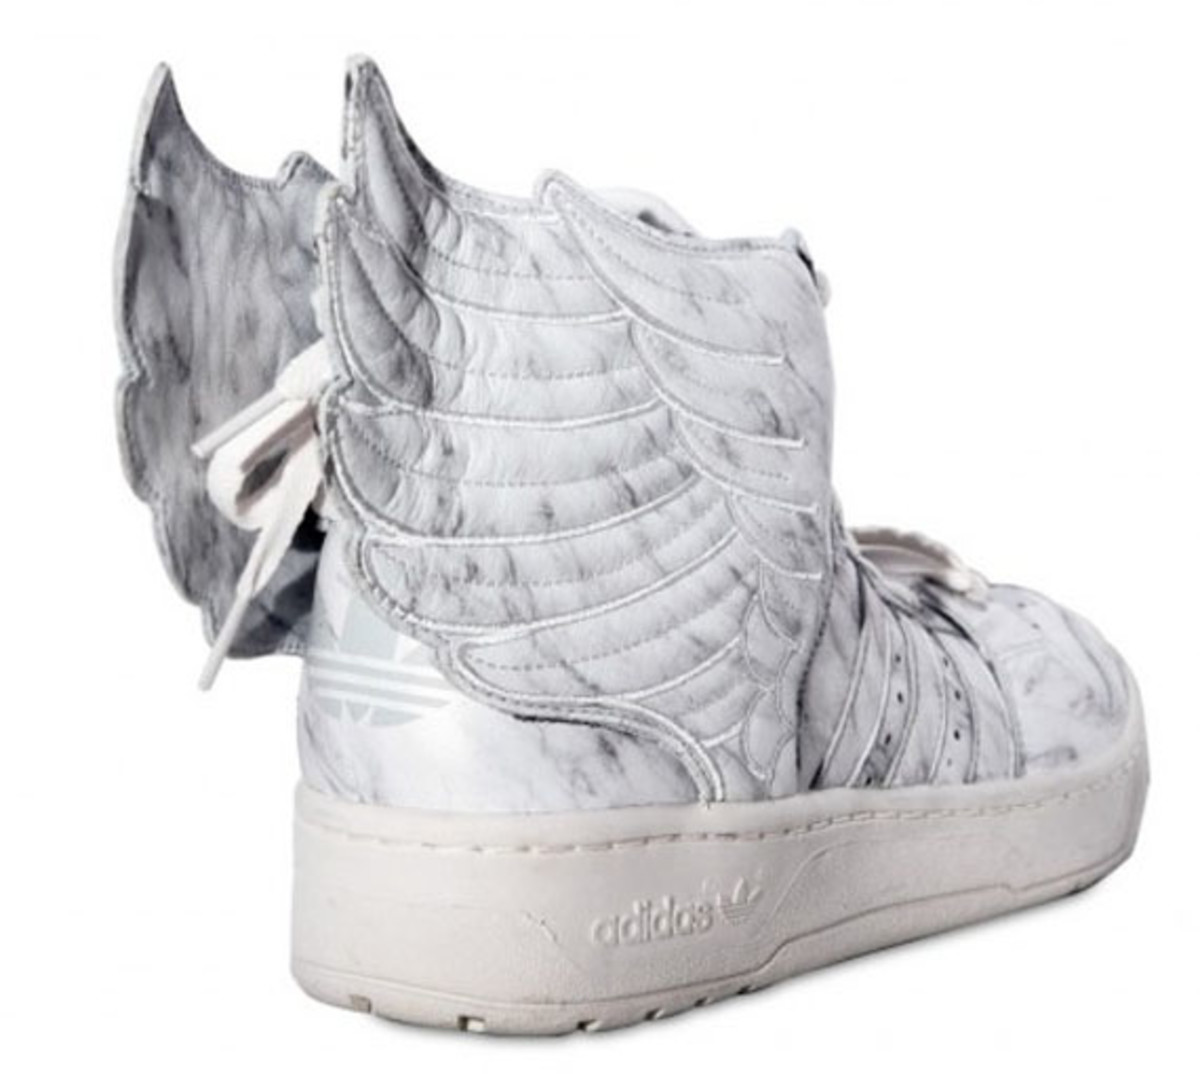 adidas-originals-by-originals-jeremy-scott-fw10-leather-wings-marble-3